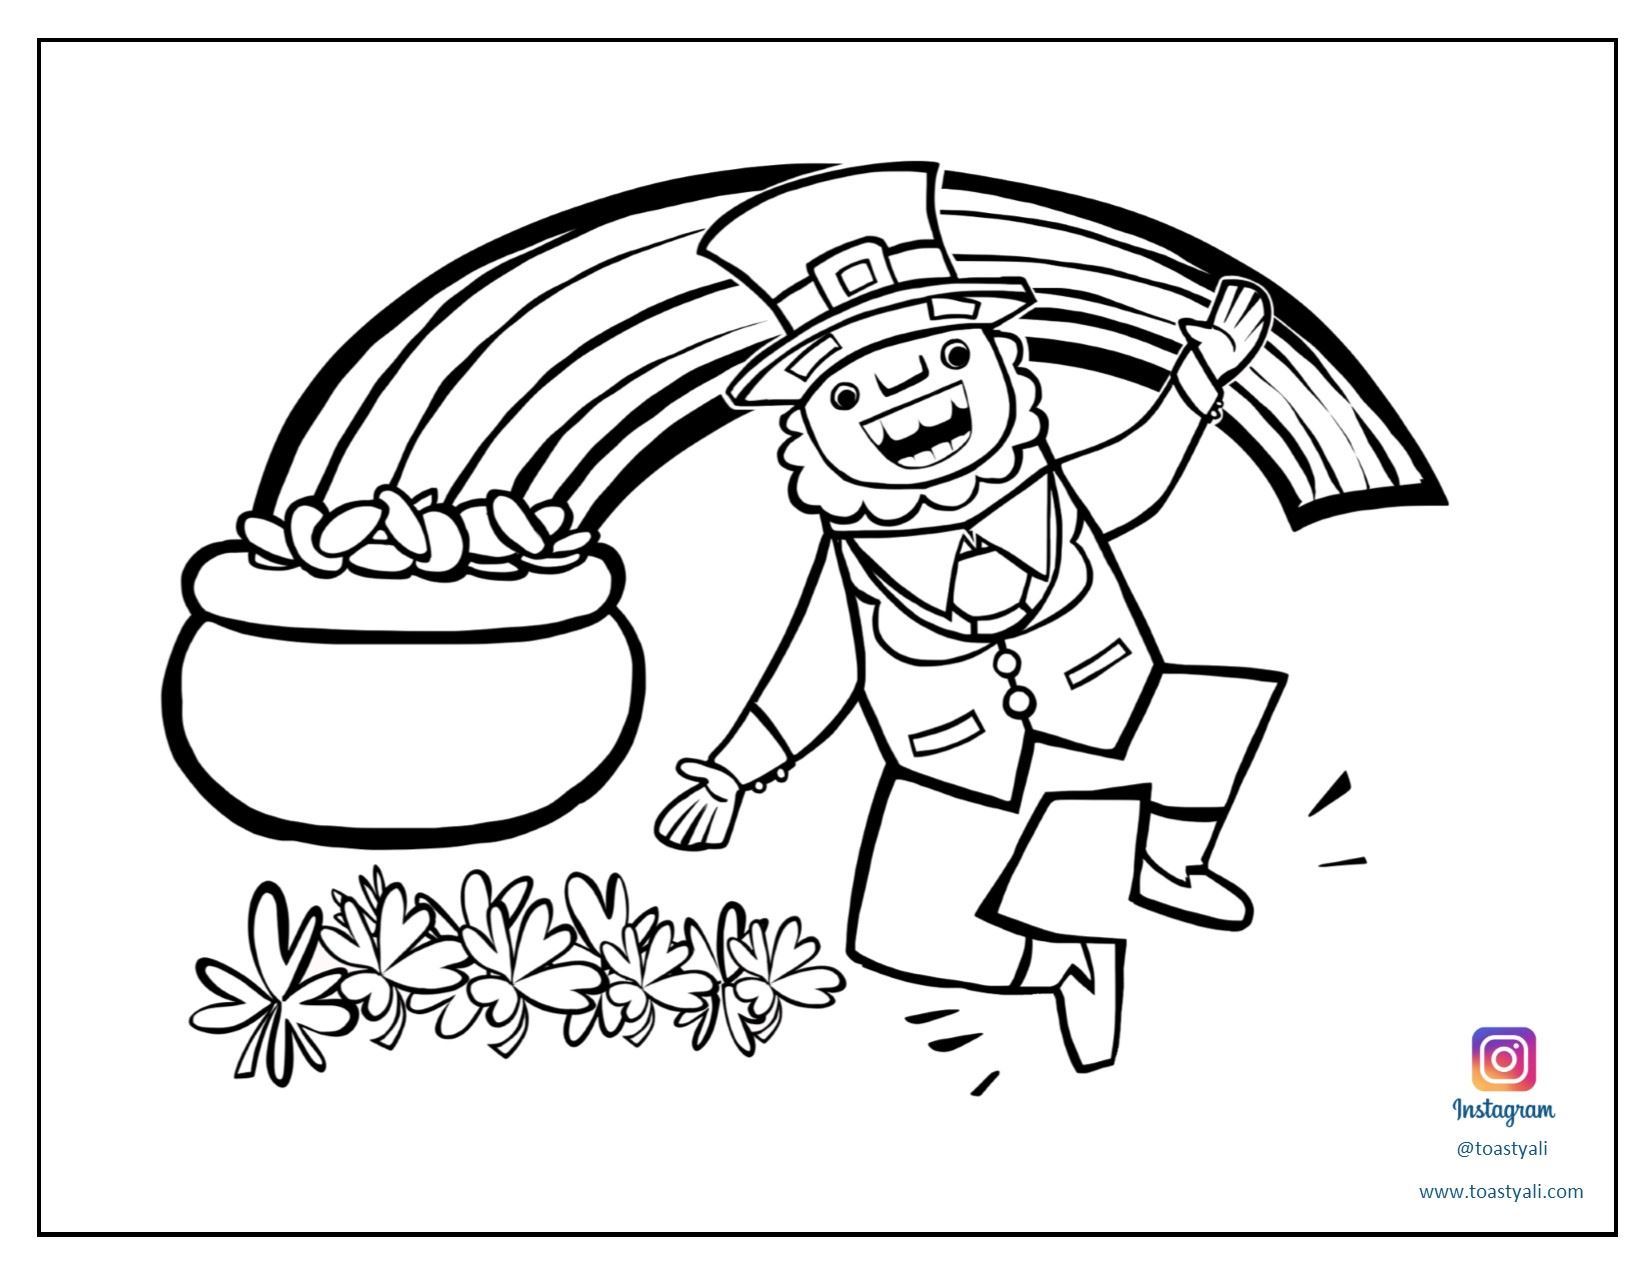 100 saint patricks day coloring pages lps coloring pages ffftp